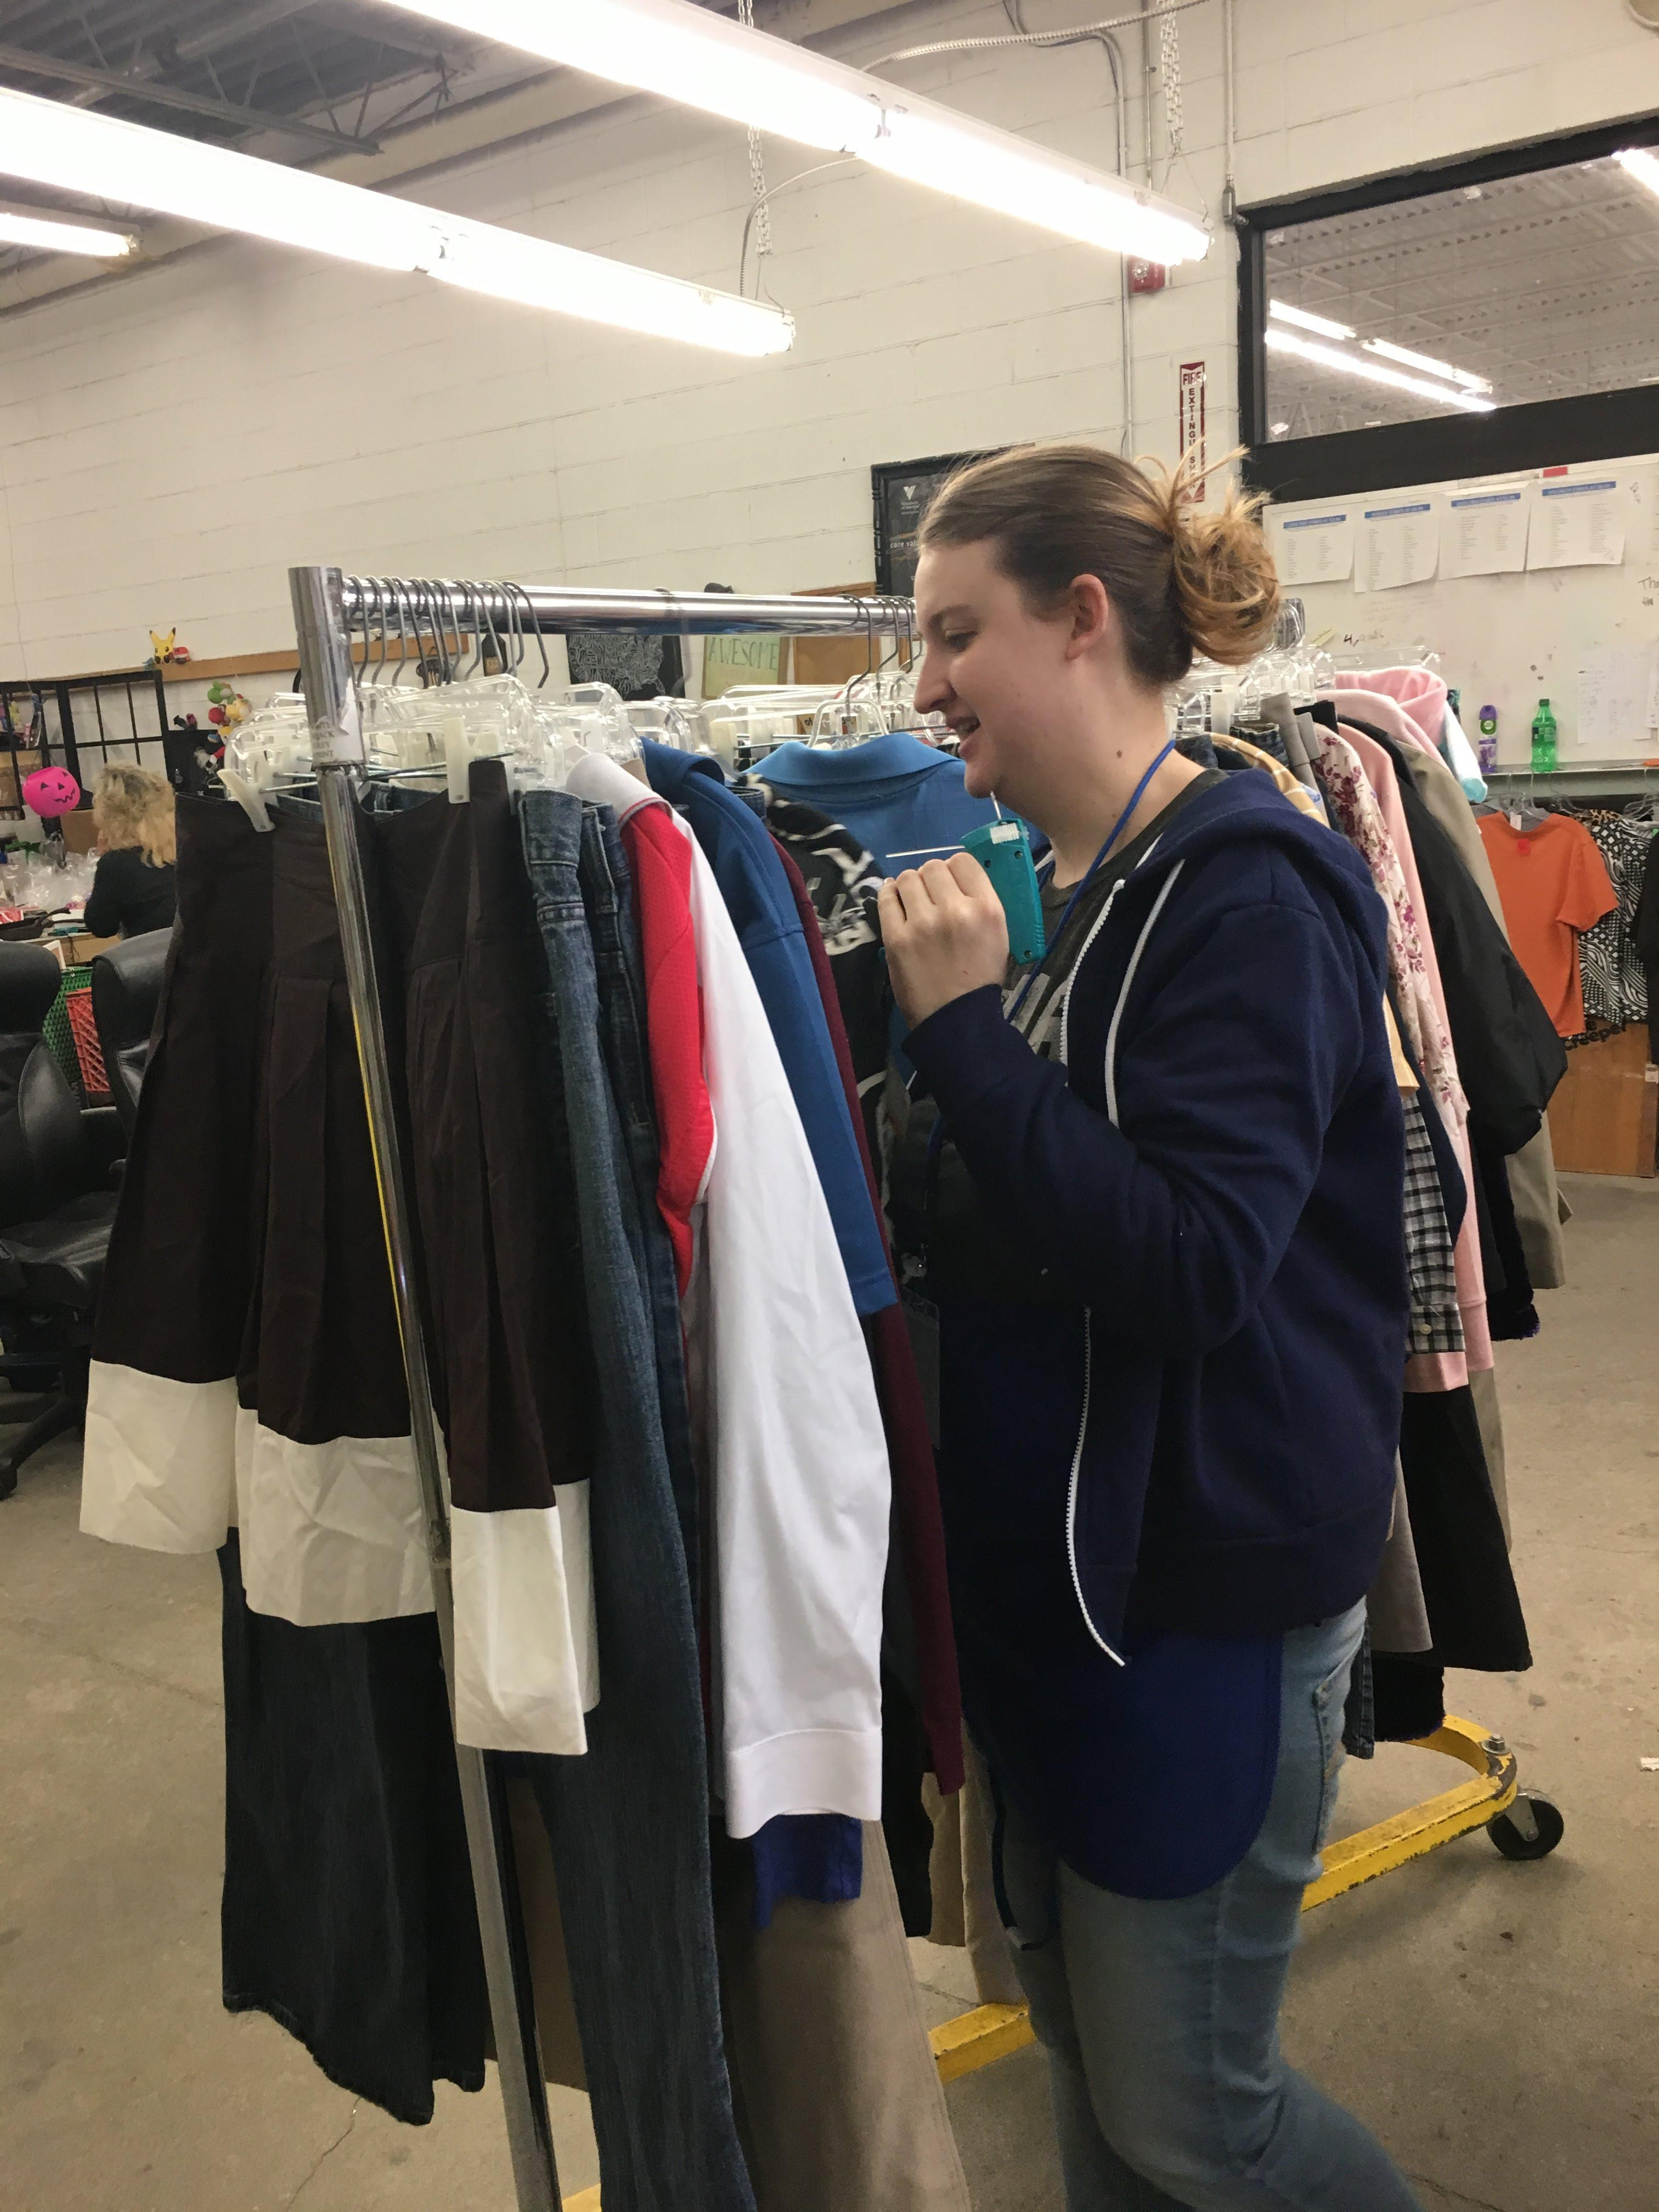 Giving each clothing item a tag